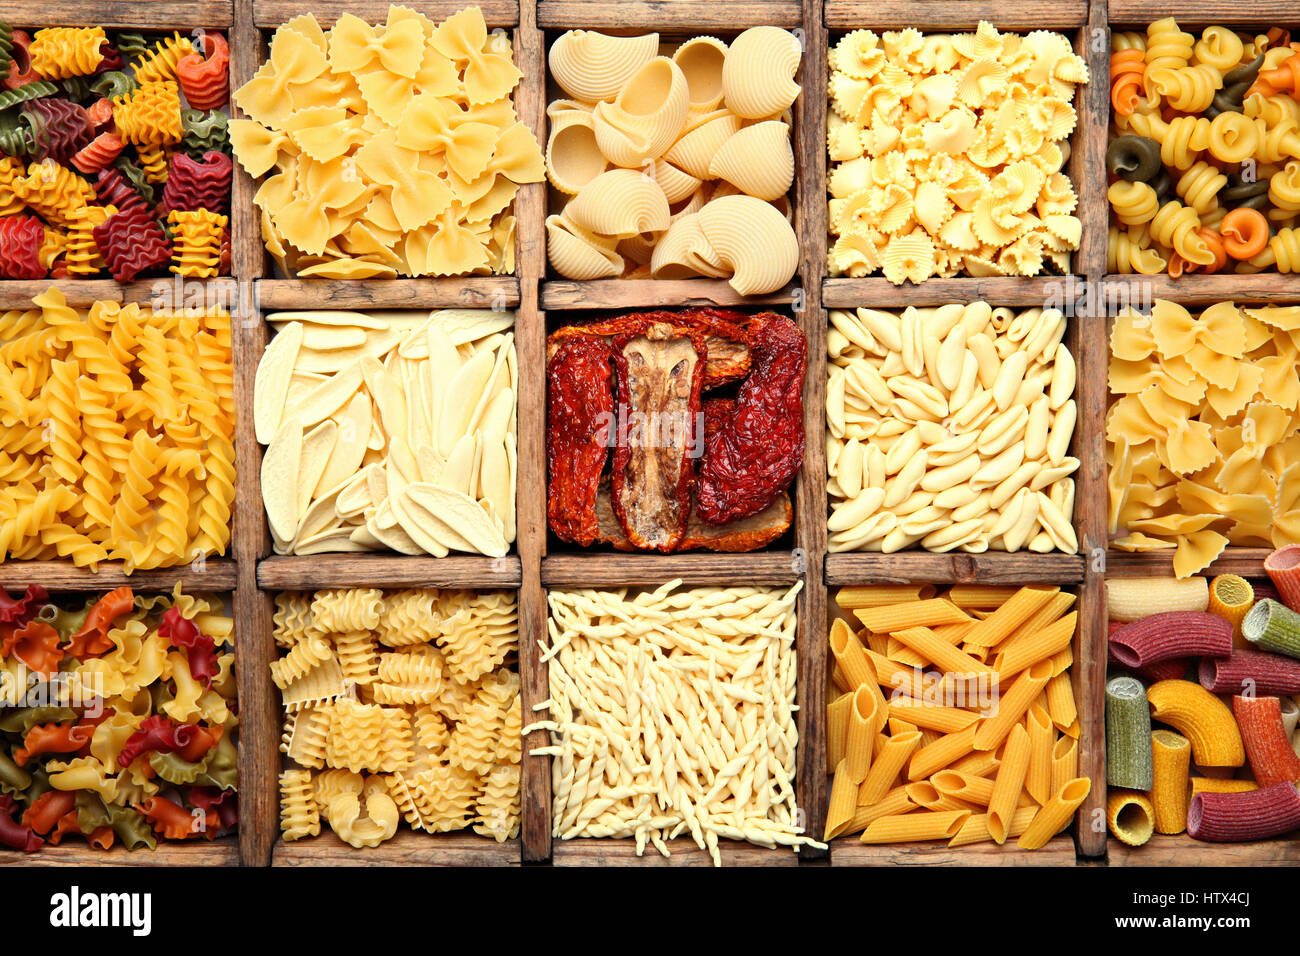 Background image of traditional italian colorful homemade pasta - Stock Image